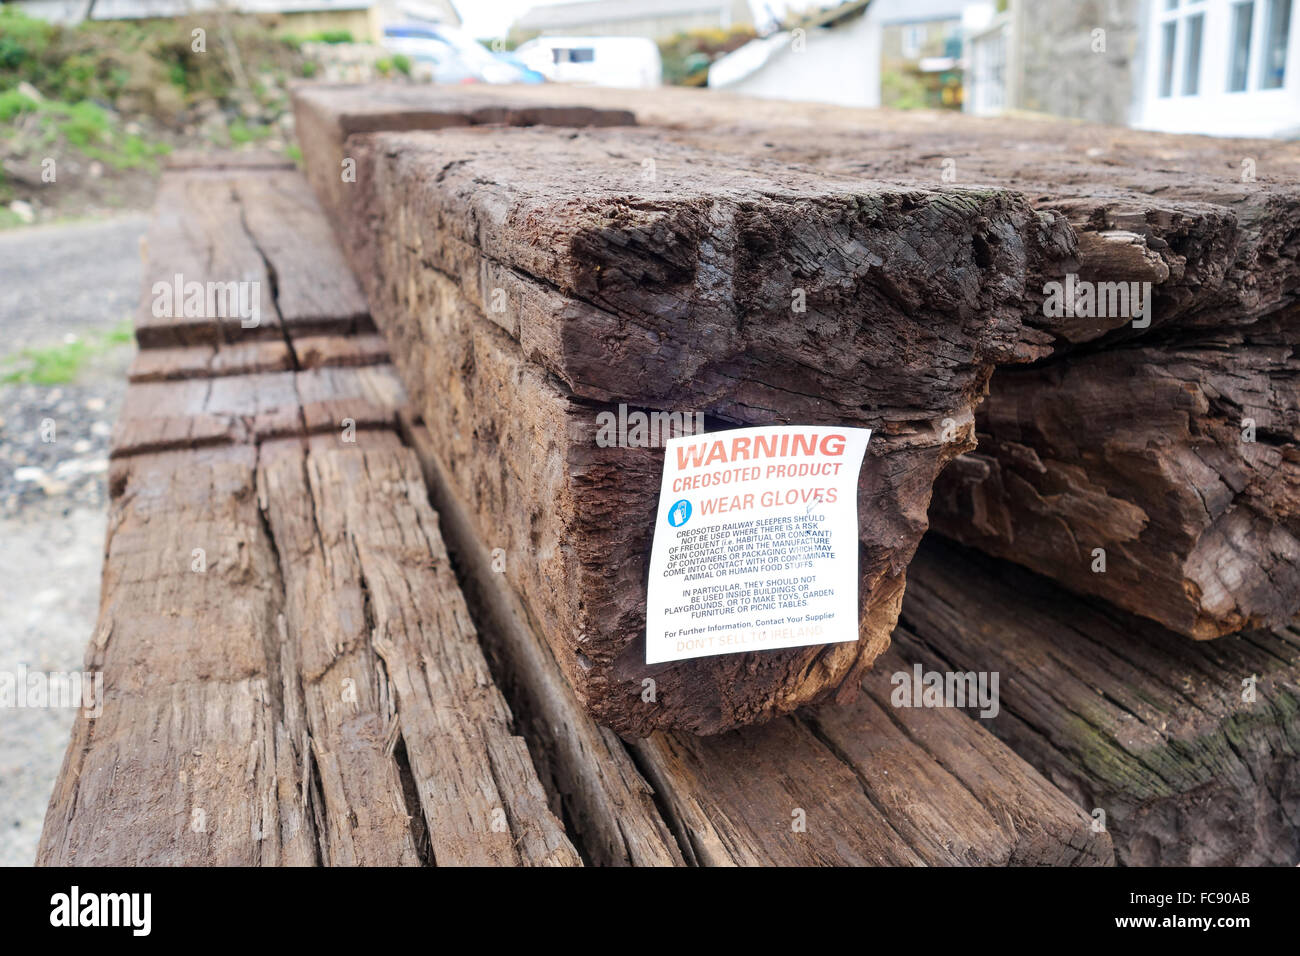 A sign on creosoted wooden railway sleepers advising caution and warning to wear gloves when handling and do not - Stock Image